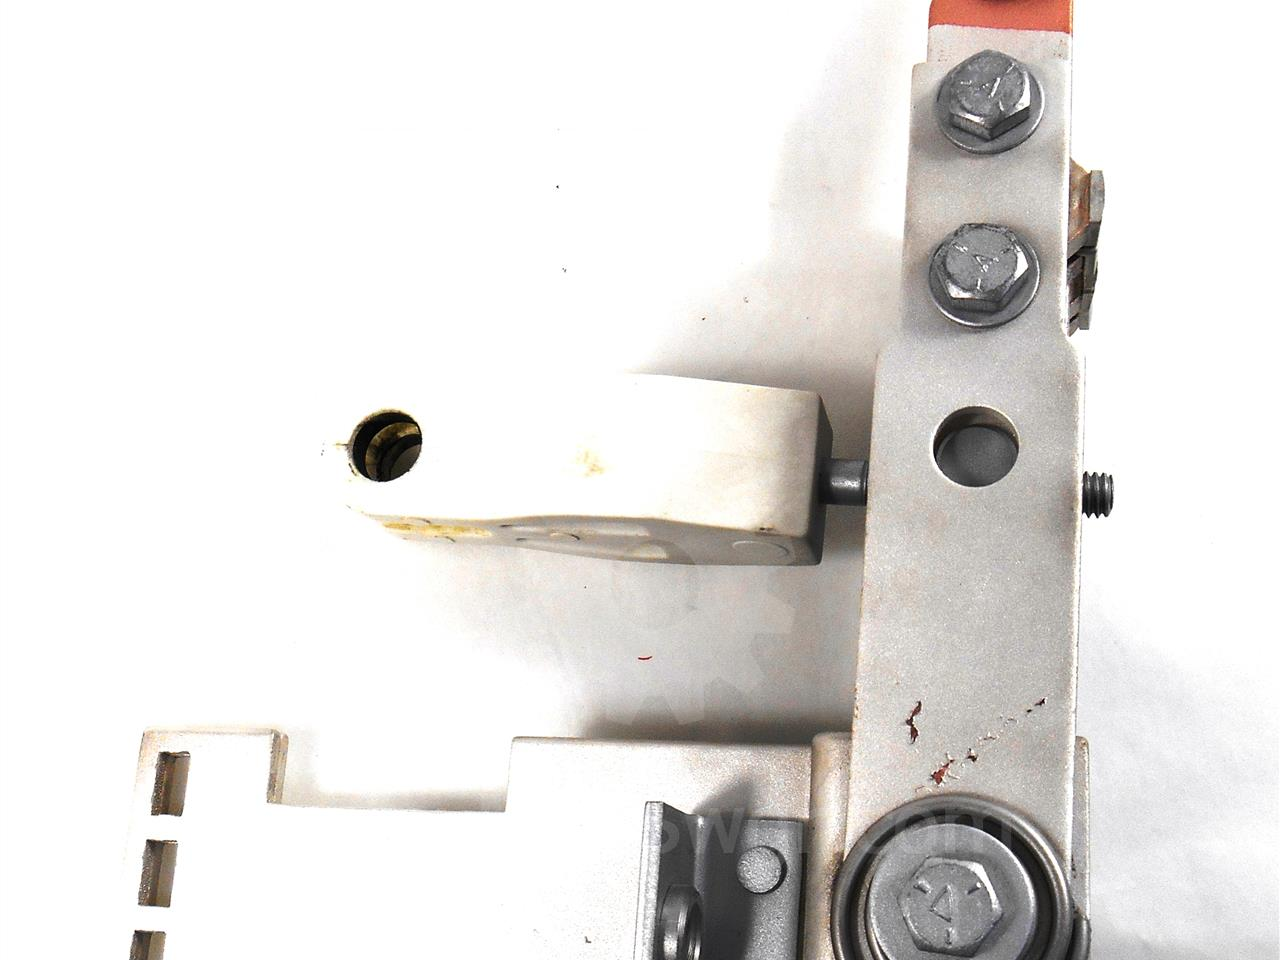 Westinghouse / Cutler Hammer WH MOVING CONTACT ASSEMBLY